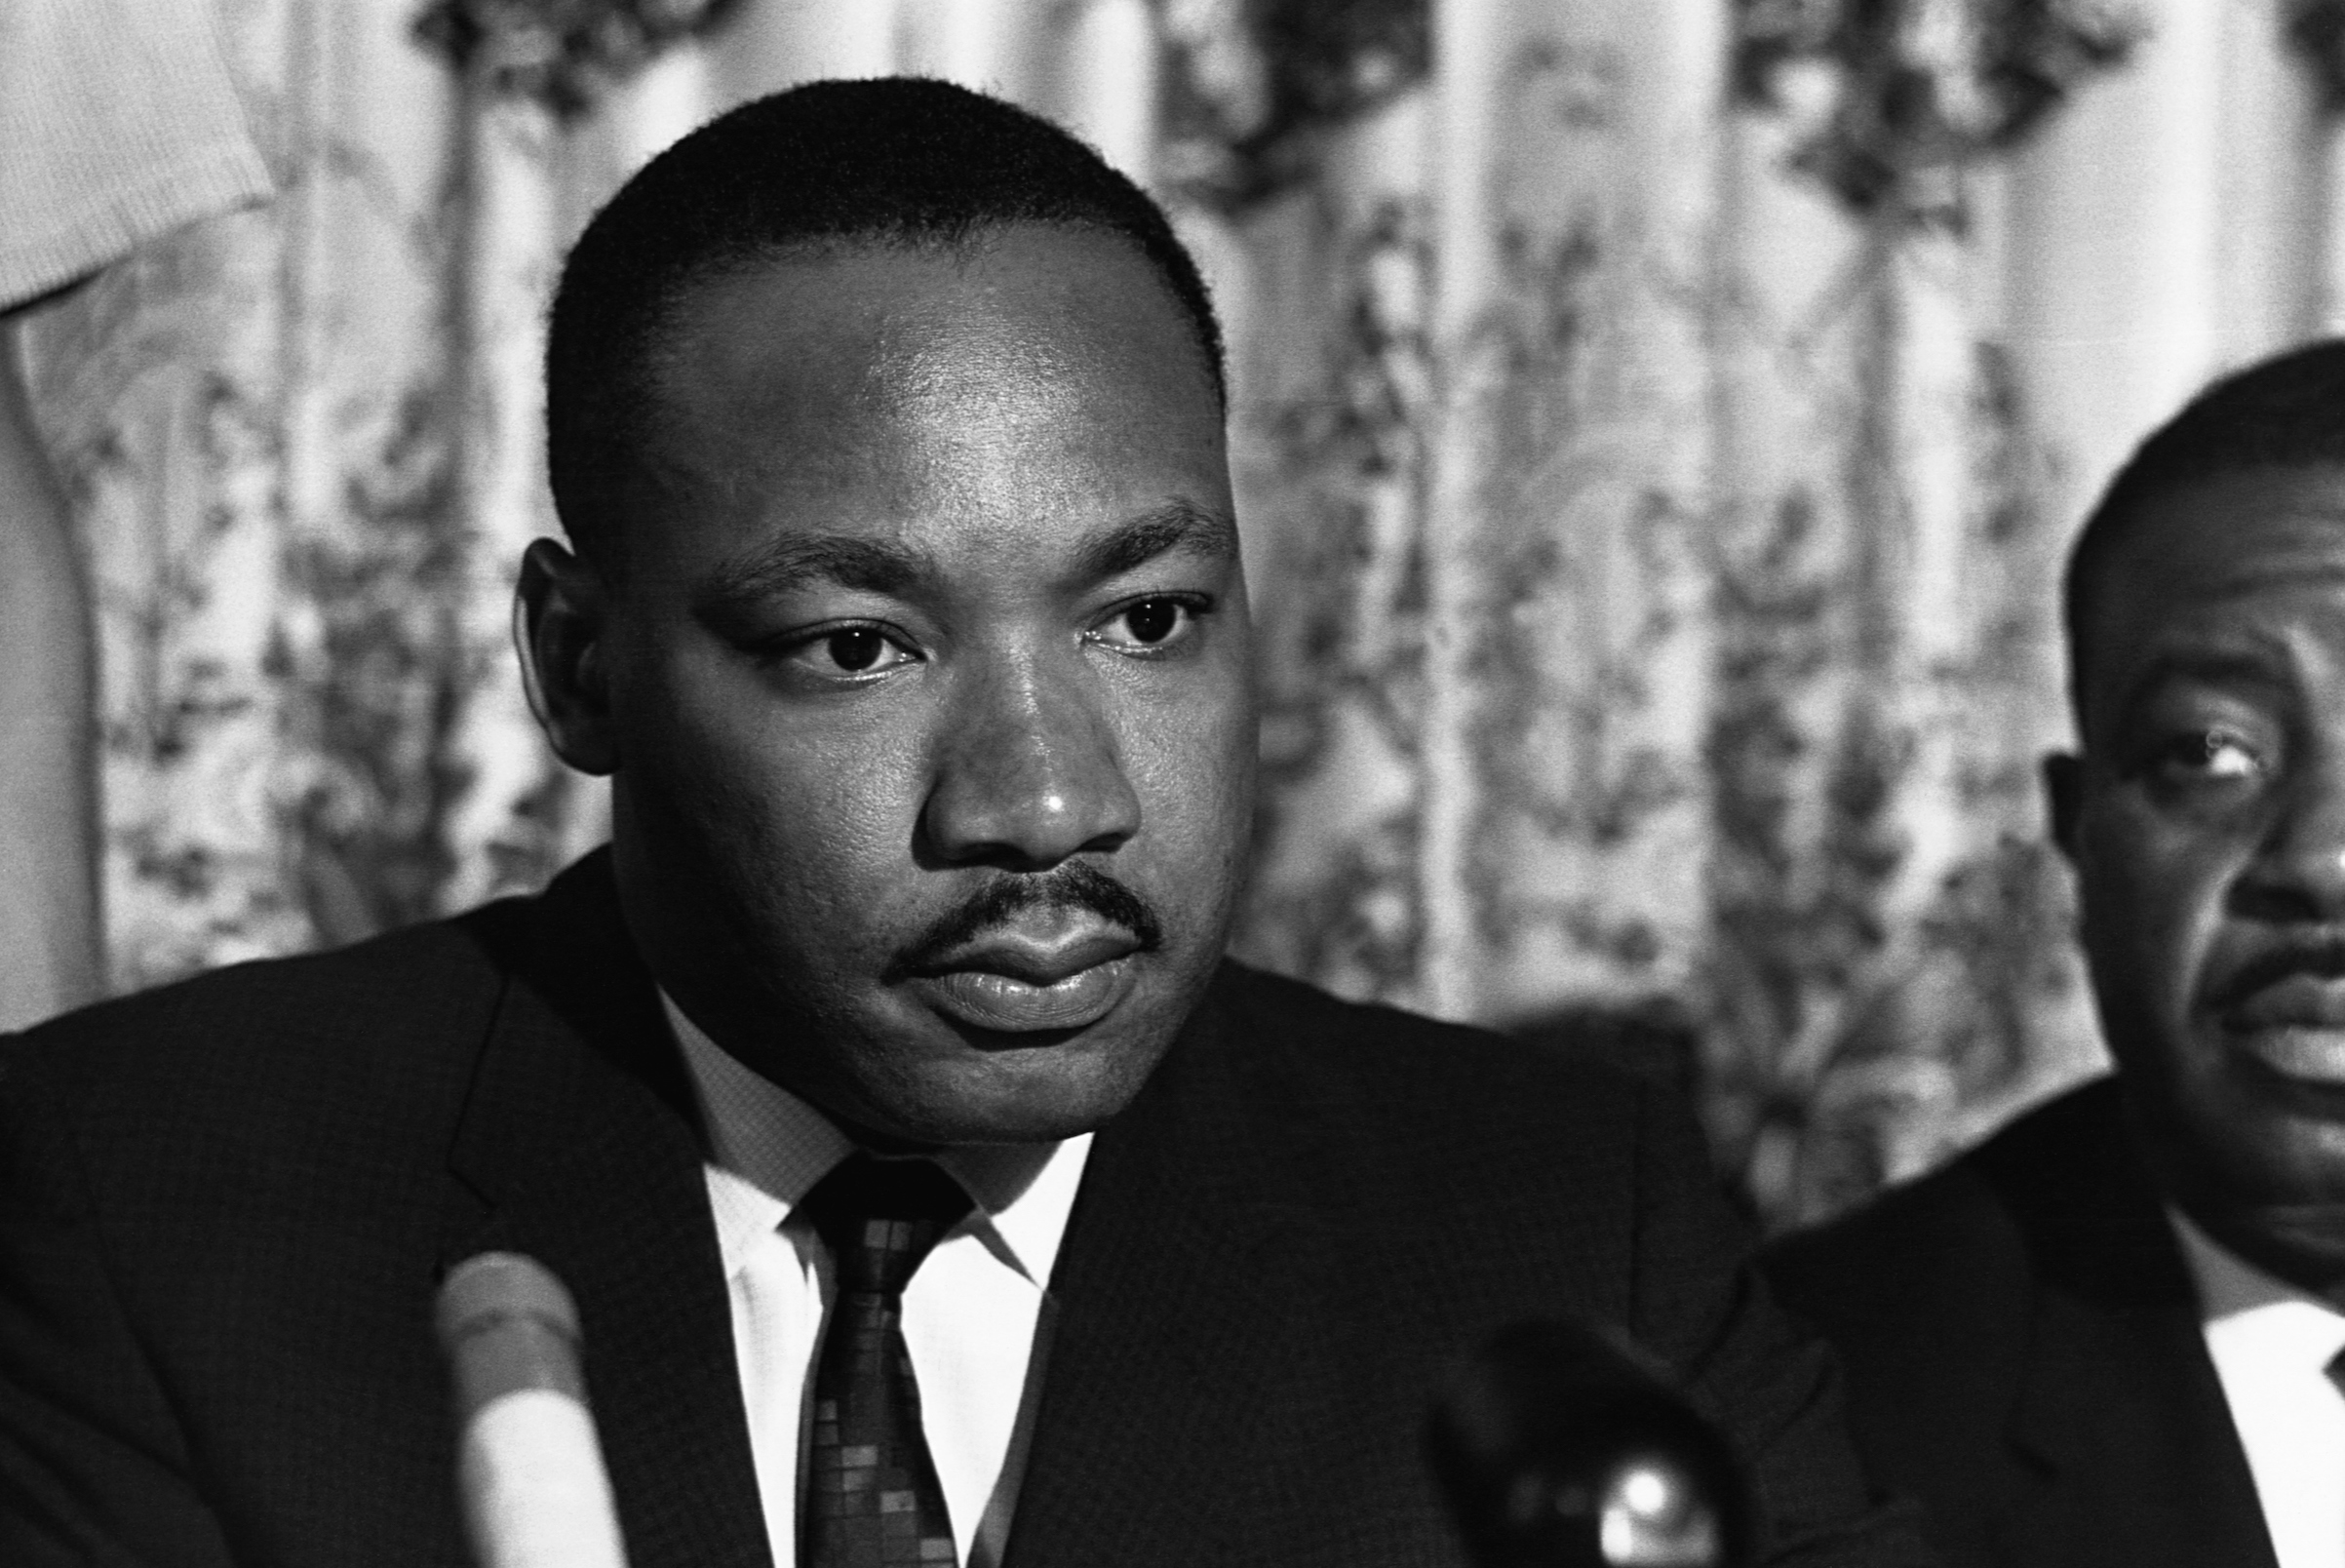 Martin Luther King, Jr. listens to a question at a news conference.